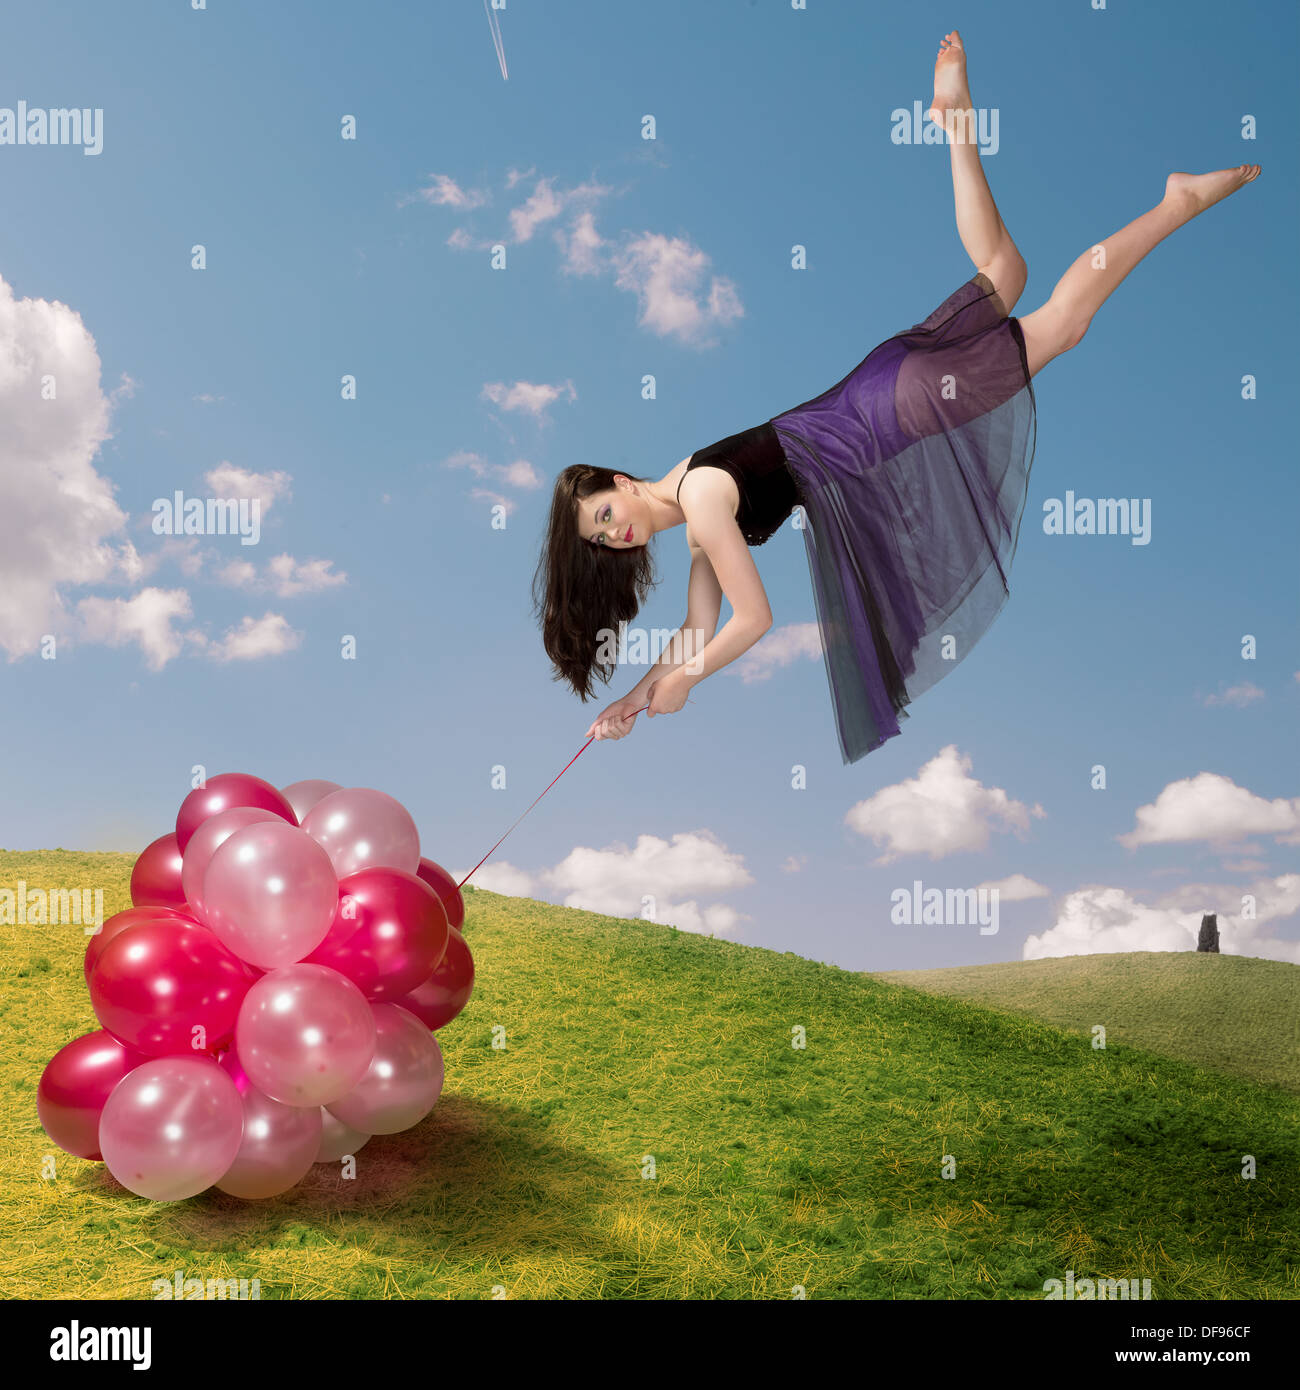 Flying girl holding colourful balloons Stock Photo